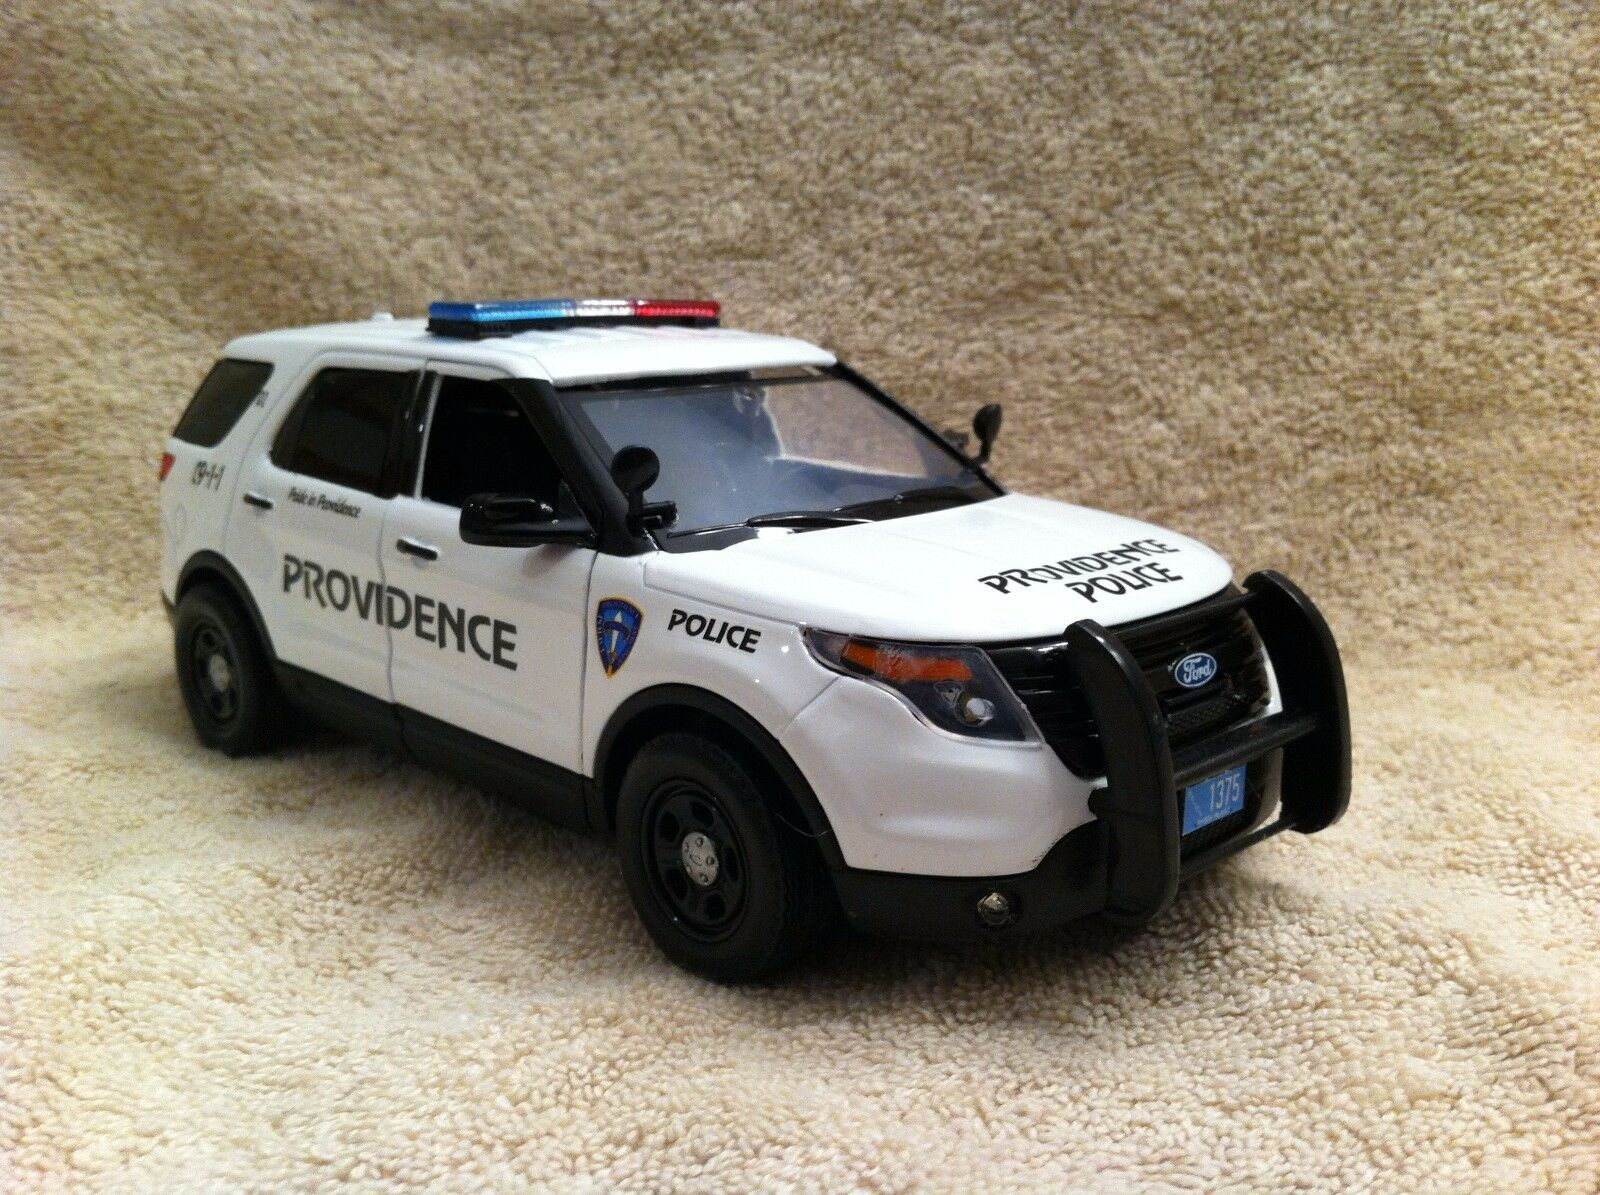 1 24 SCALE PROVIDENCE RI POLICEFORD SUV UT DIECAST WITH WORKING LIGHTS AND SIREN